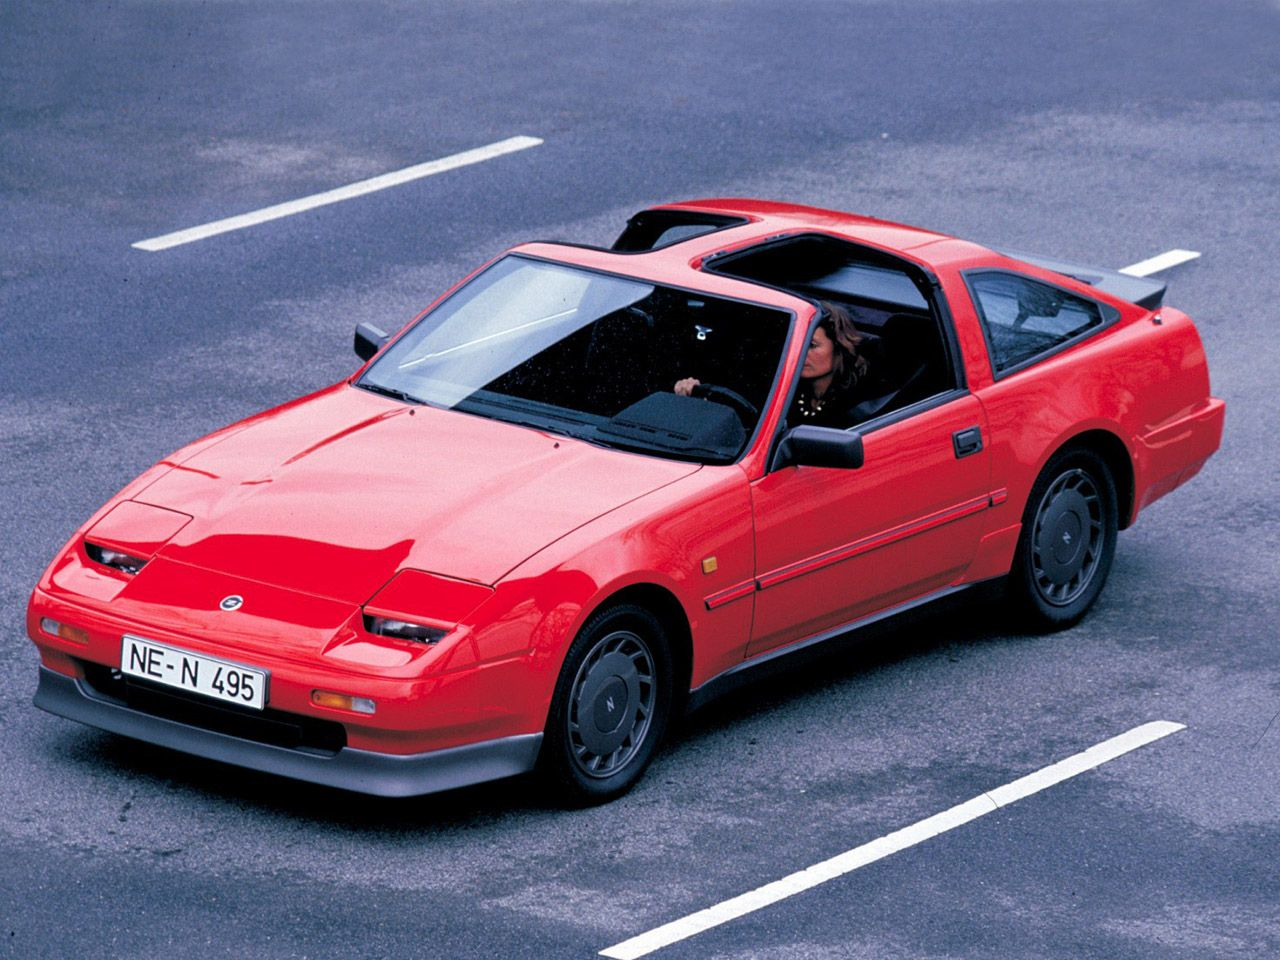 87' Nissan 300ZX Z31 | Nismo... Cream of the crop from Nissan ...